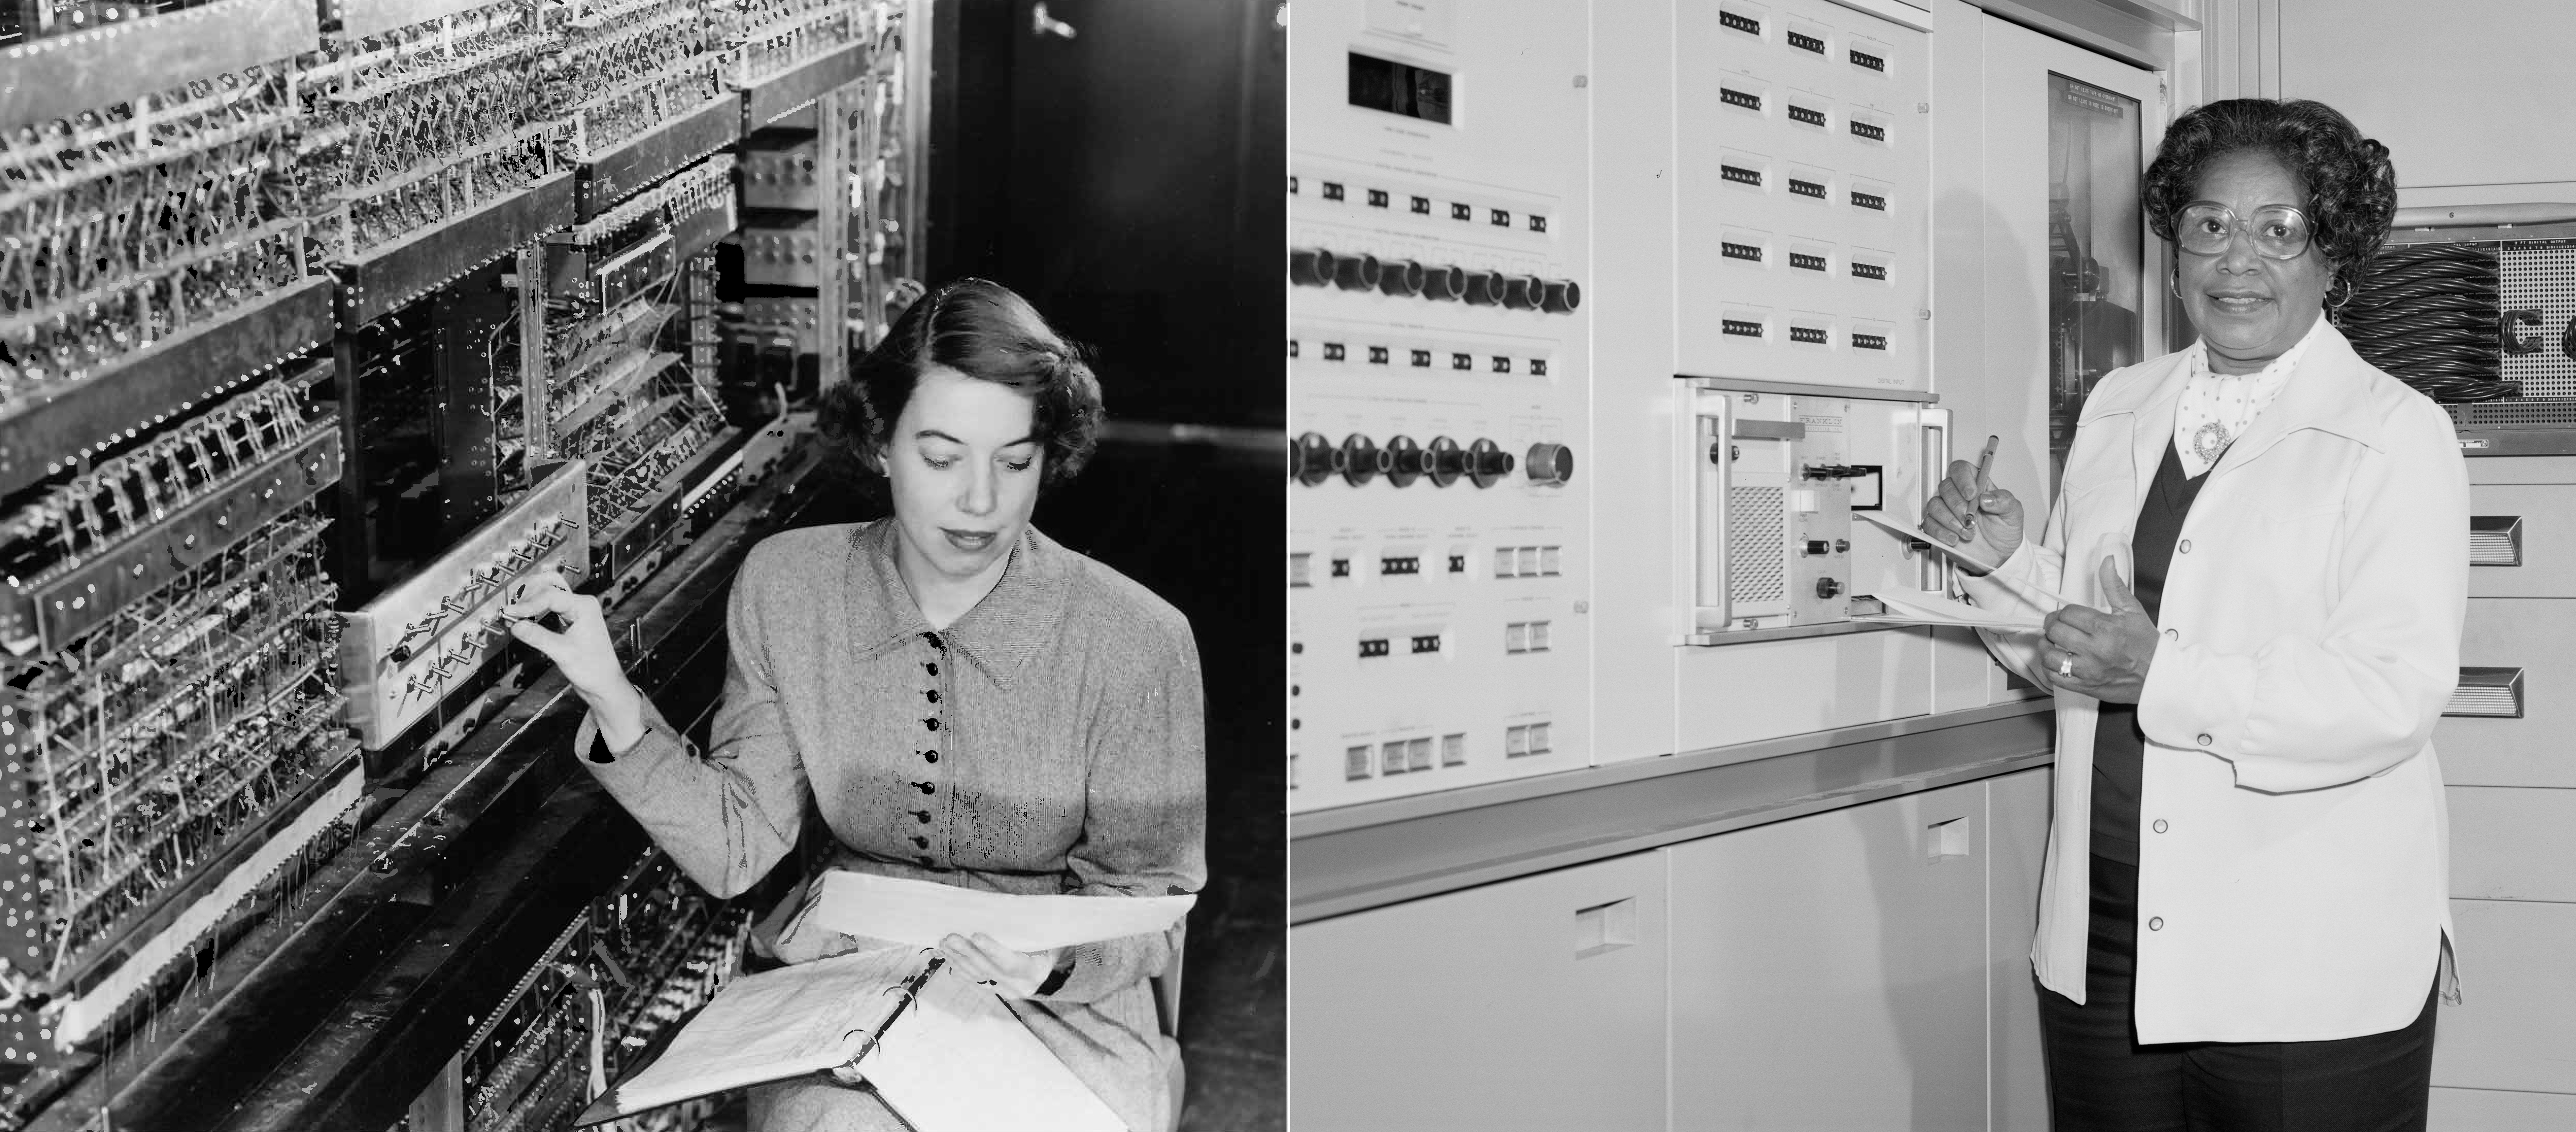 Two black and white photos of early female computer engineers